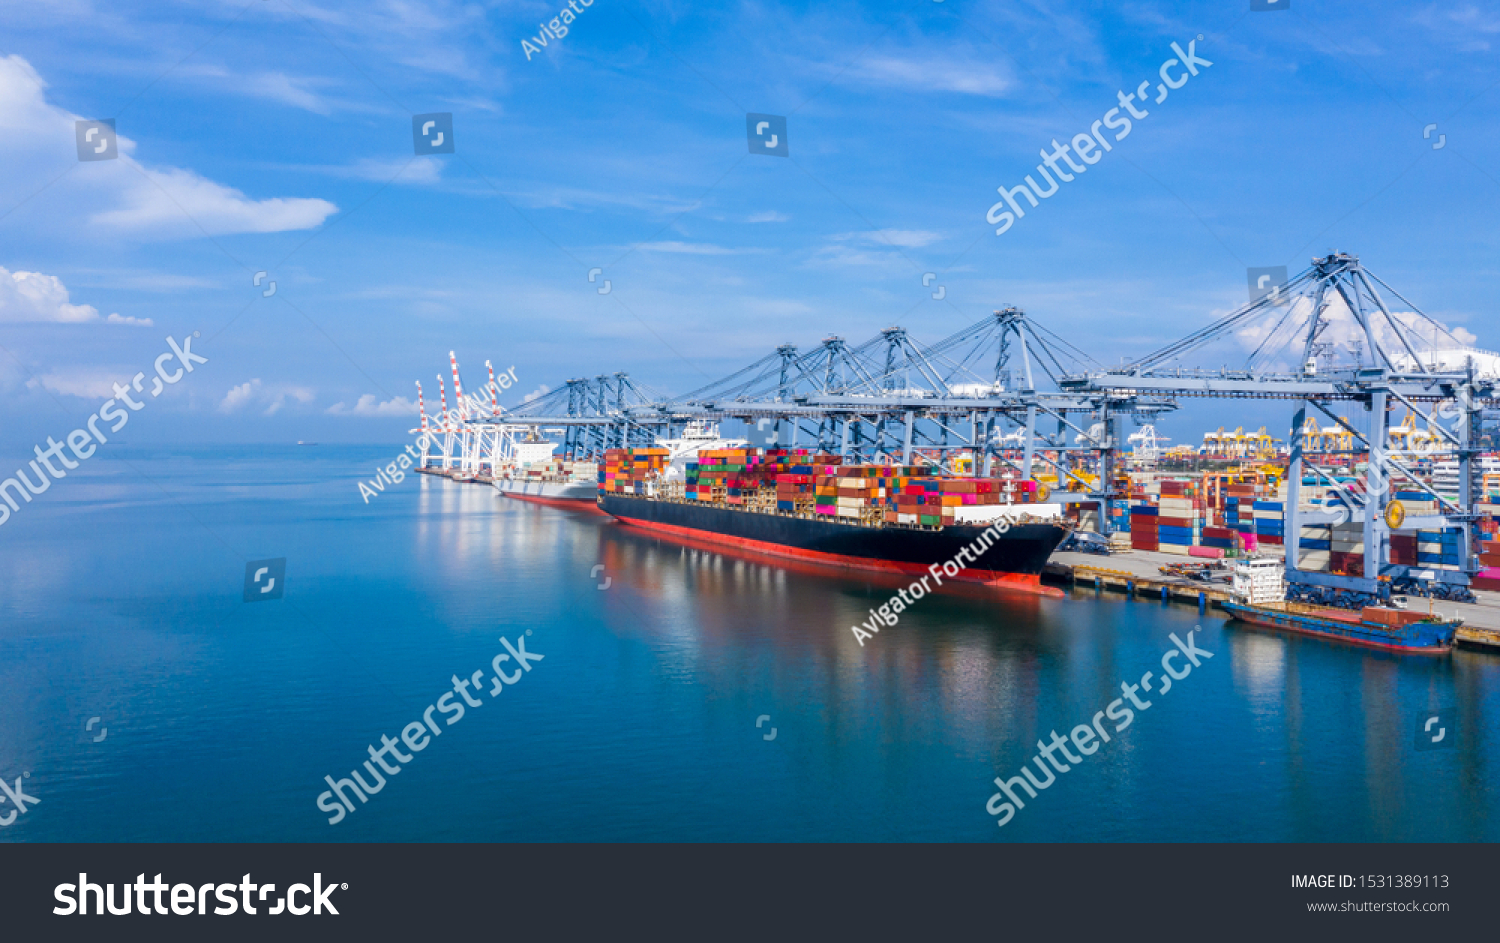 Container cargo ship at industrial port in import export business logistic and transportation, Container ship loading and unloading freight shipment, Aerial view container cargo boat freight ship. #1531389113